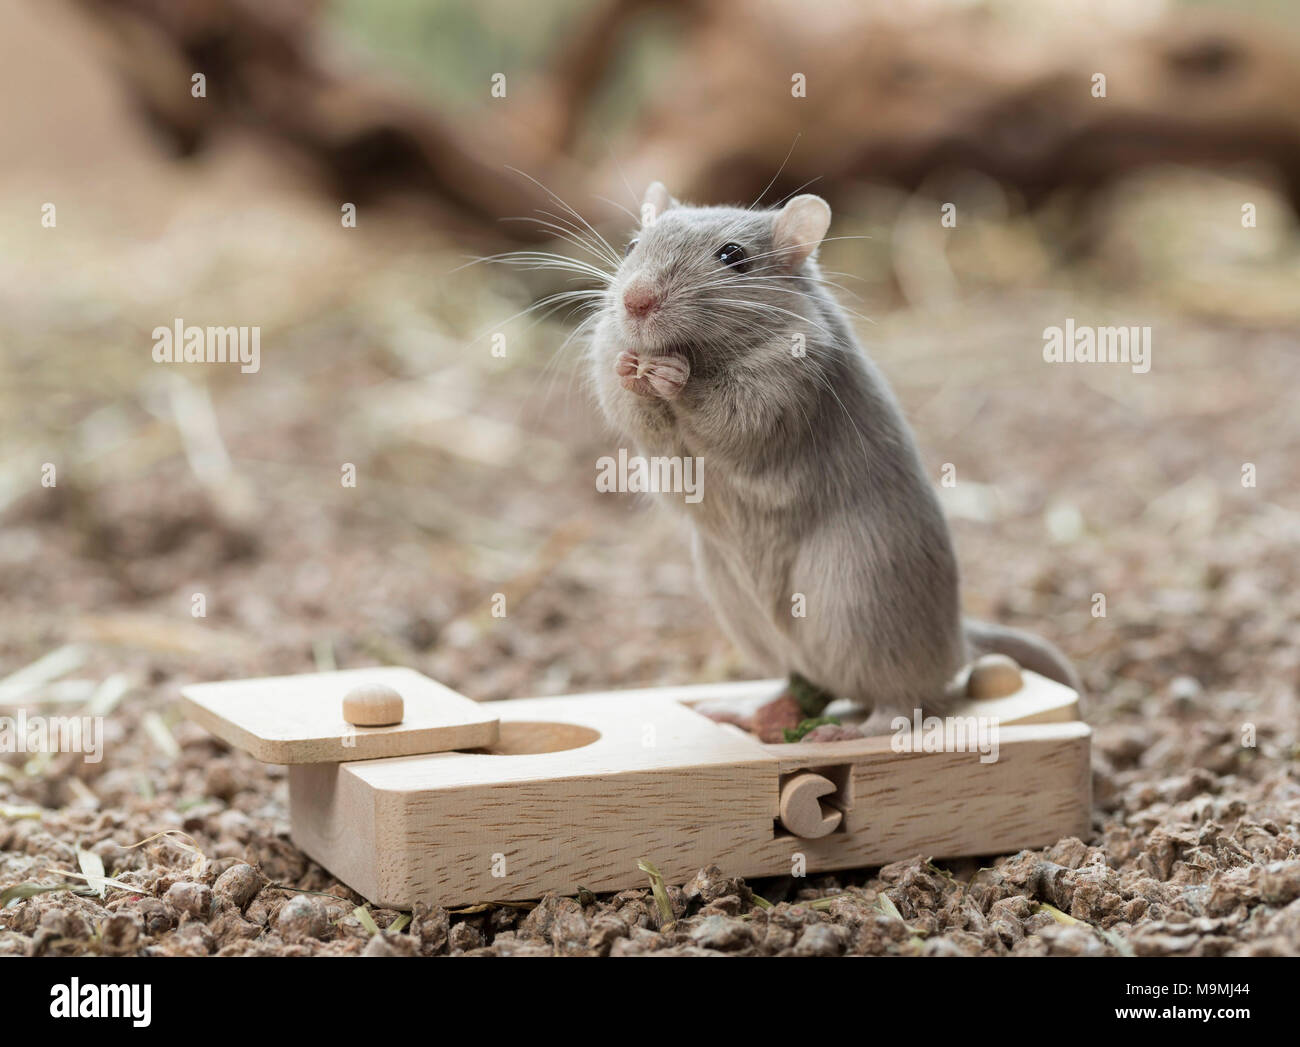 Domesticated Gerbil (Meriones unguiculatus). Adult at toy, which release food when handled. Germany - Stock Image